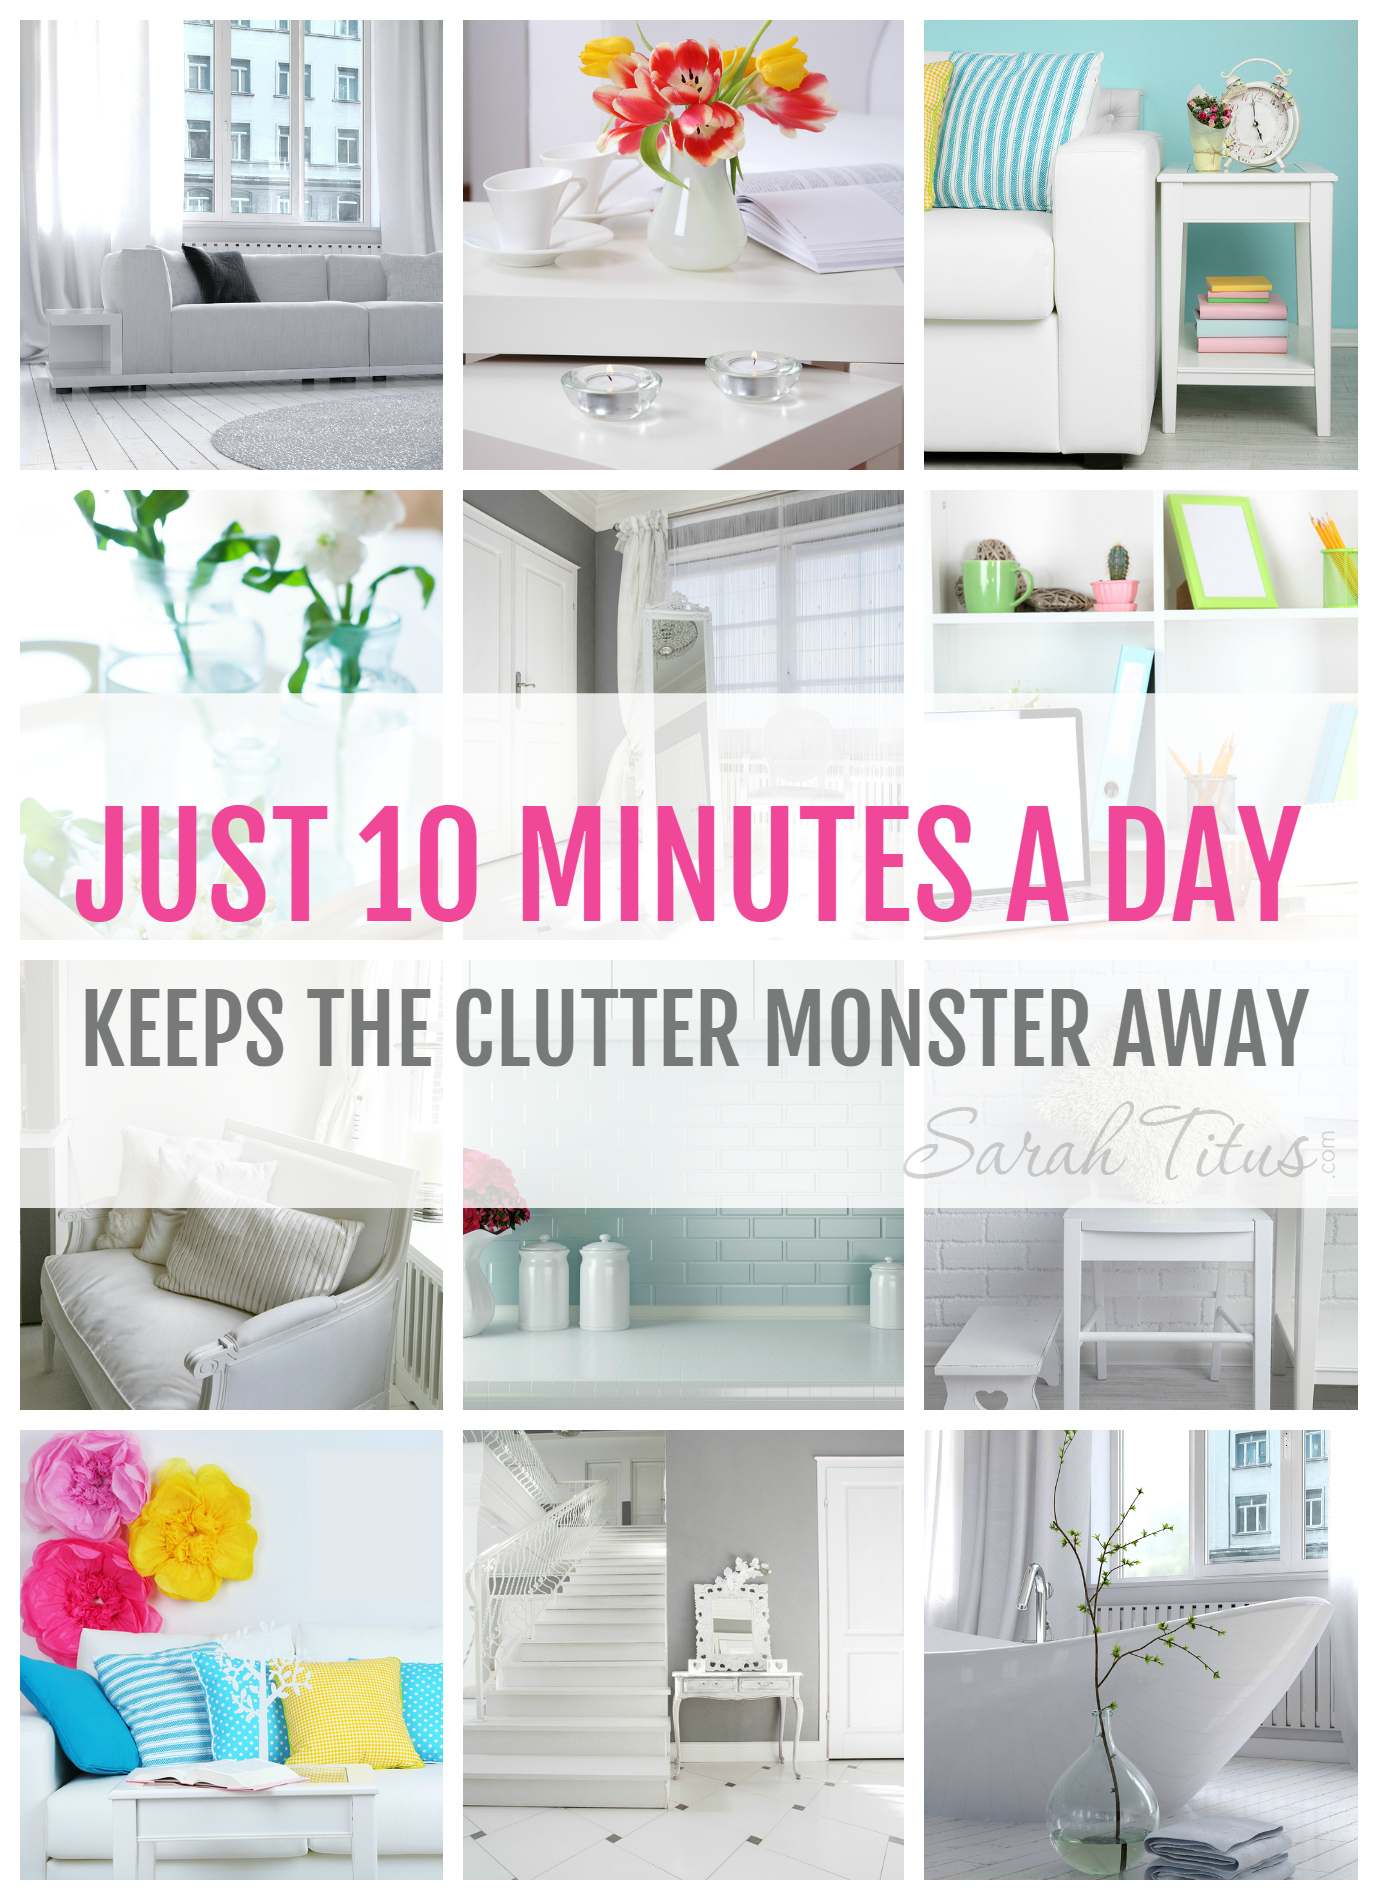 2 Organizing Tips That Will Change Your Clutter Forever - Sarah Titus